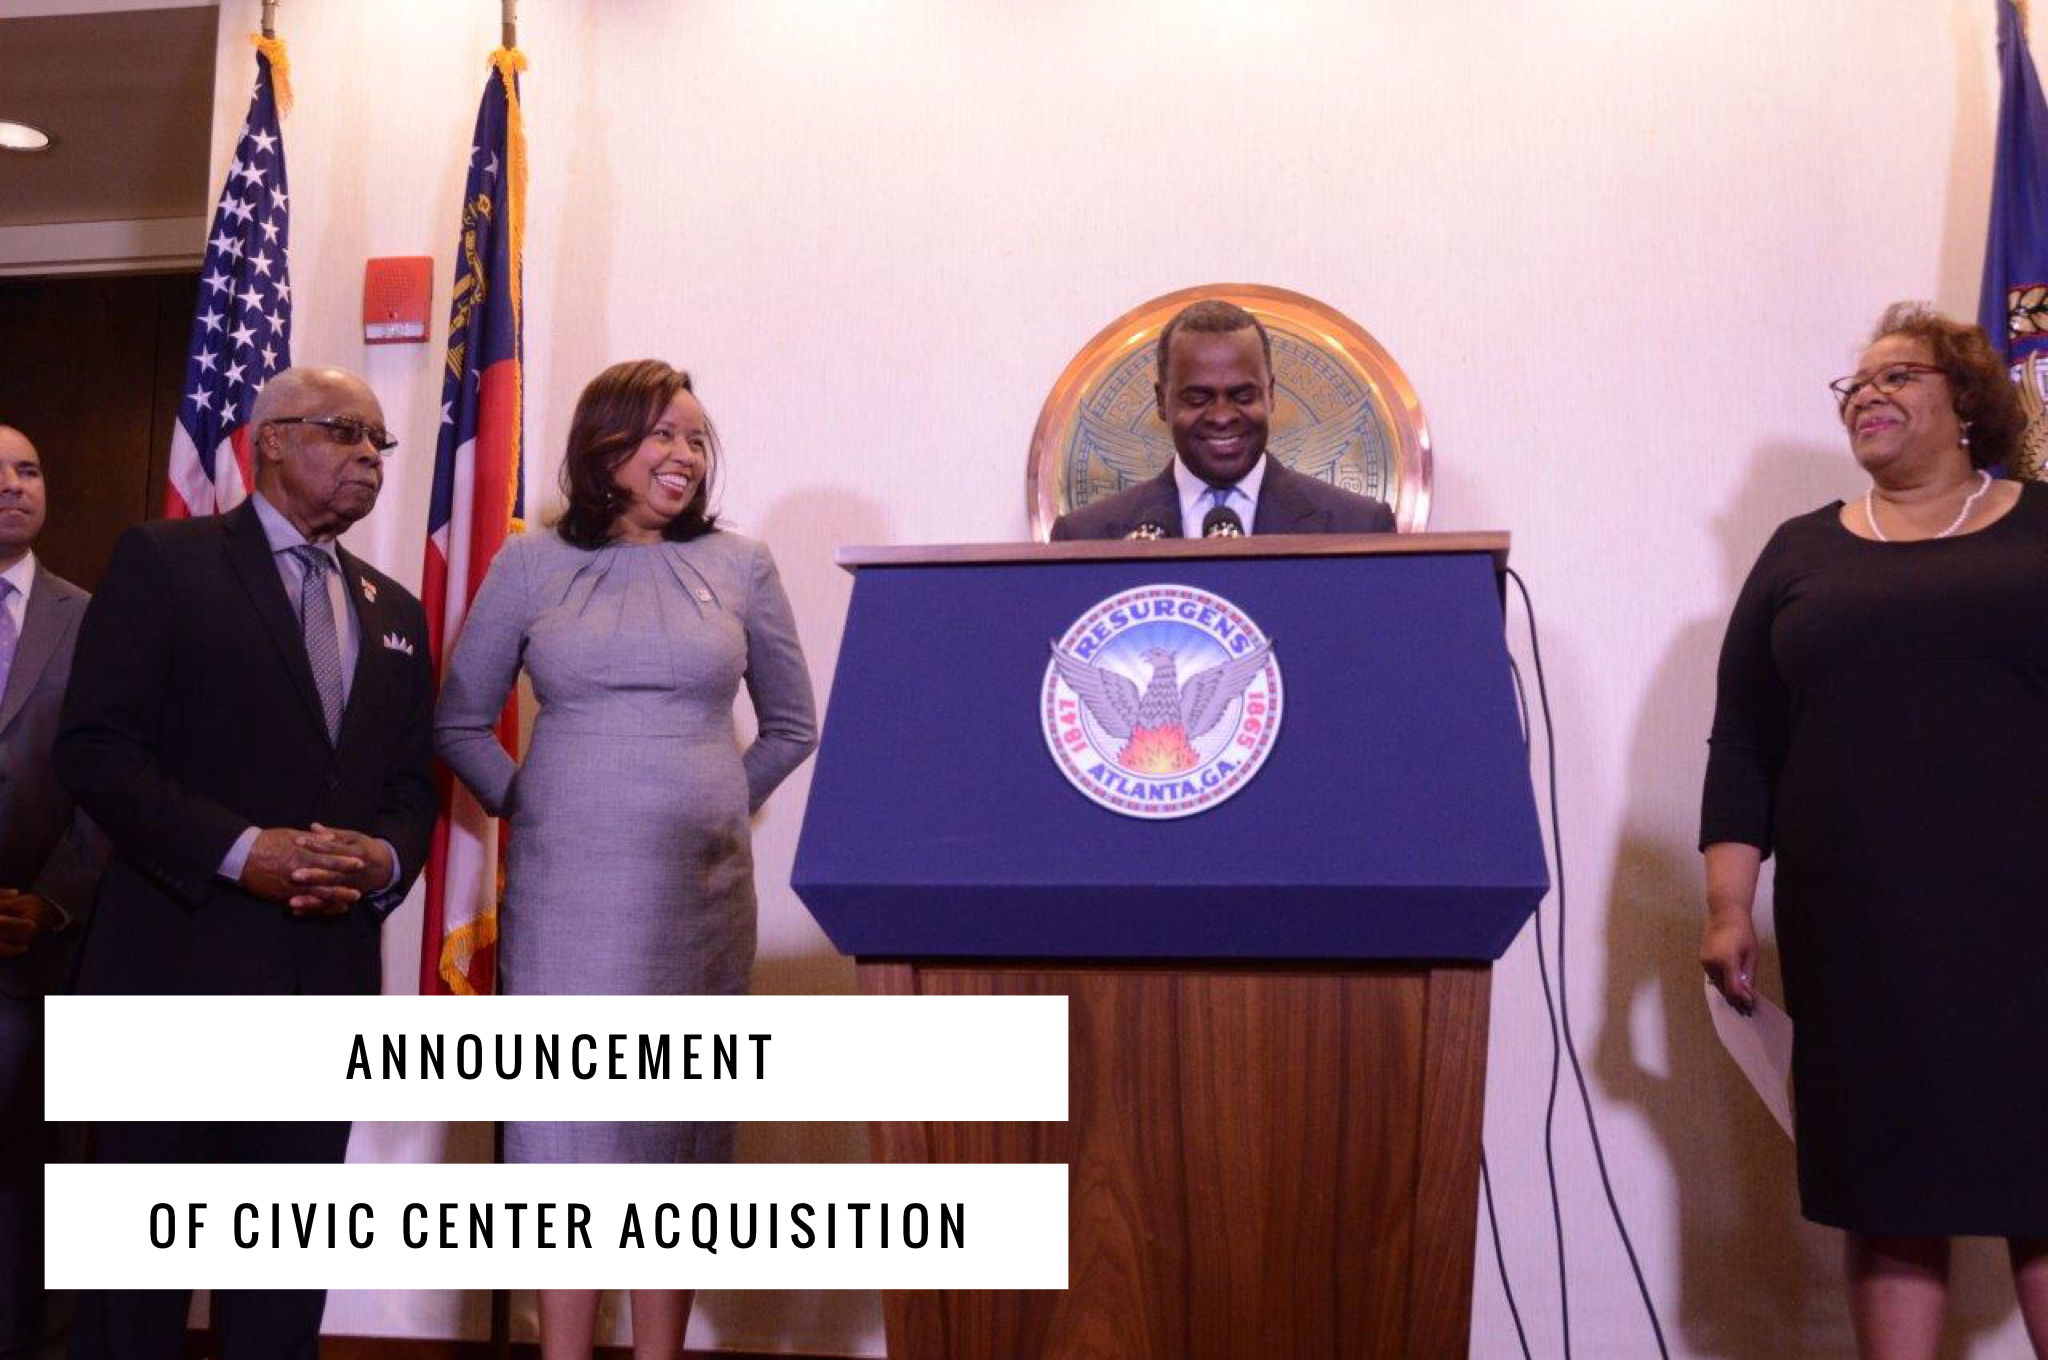 Civic Center Announcement.png